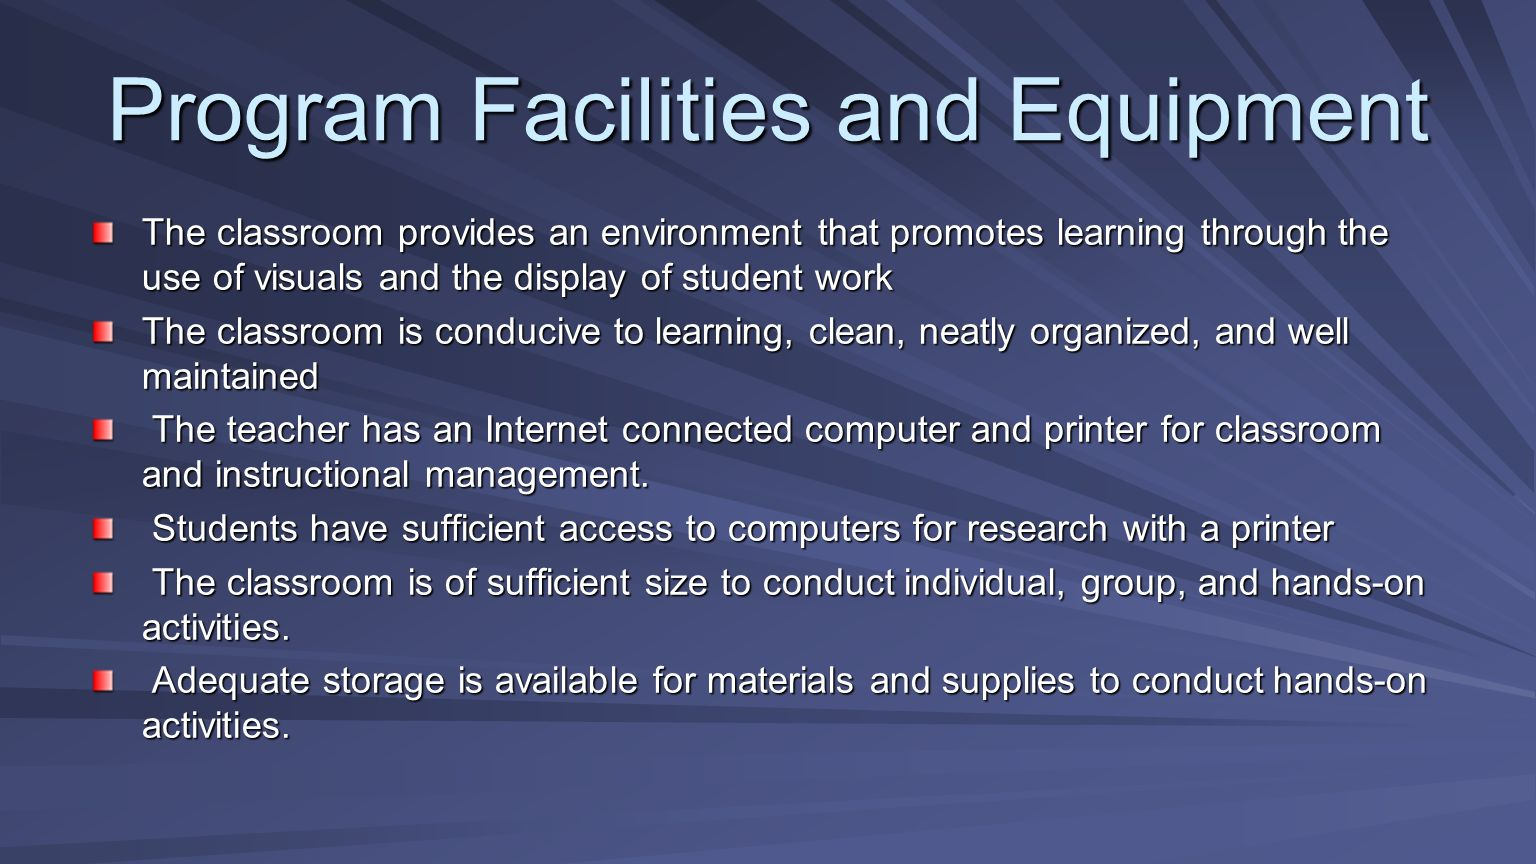 Program Facilities and Equipment The classroom provides an environment that promotes learning through the use of visuals and the display of student work The classroom is conducive to learning, clean, neatly organized, and well maintained The teacher has an Internet connected computer and printer for classroom and instructional management.